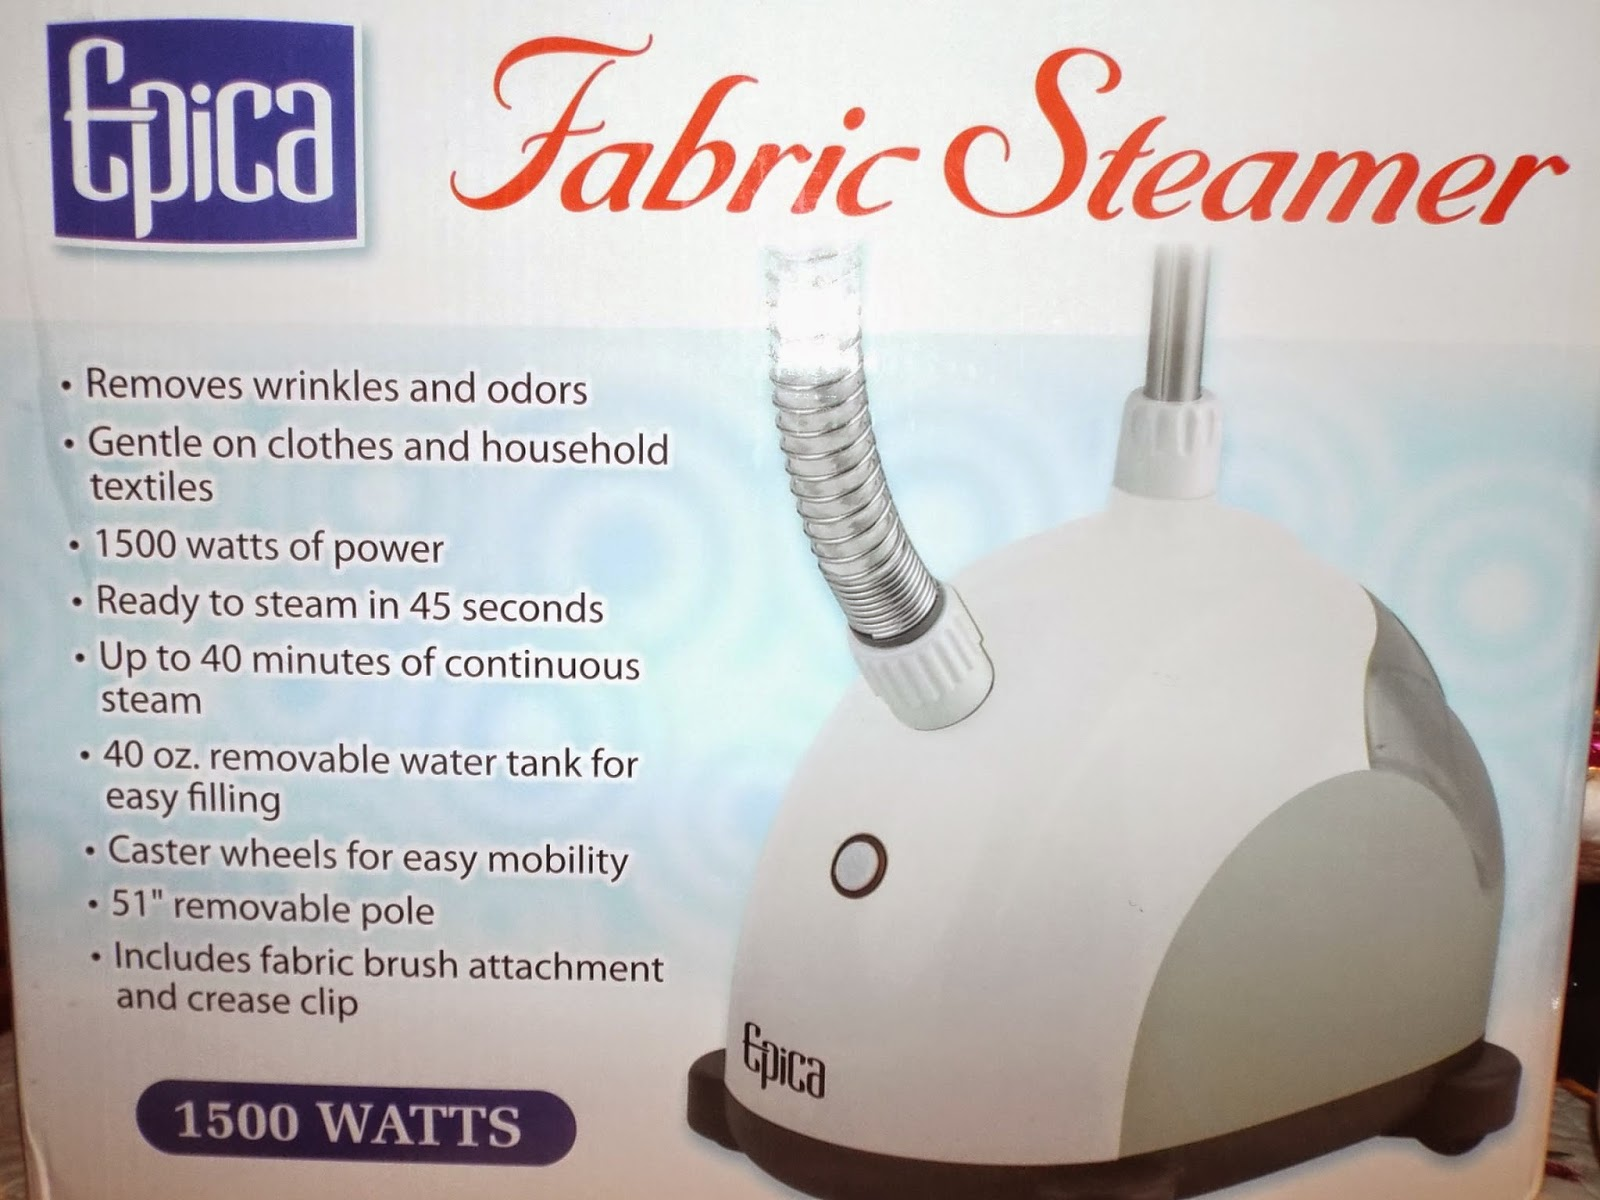 Epica 1500 Watts Fabric Steamer